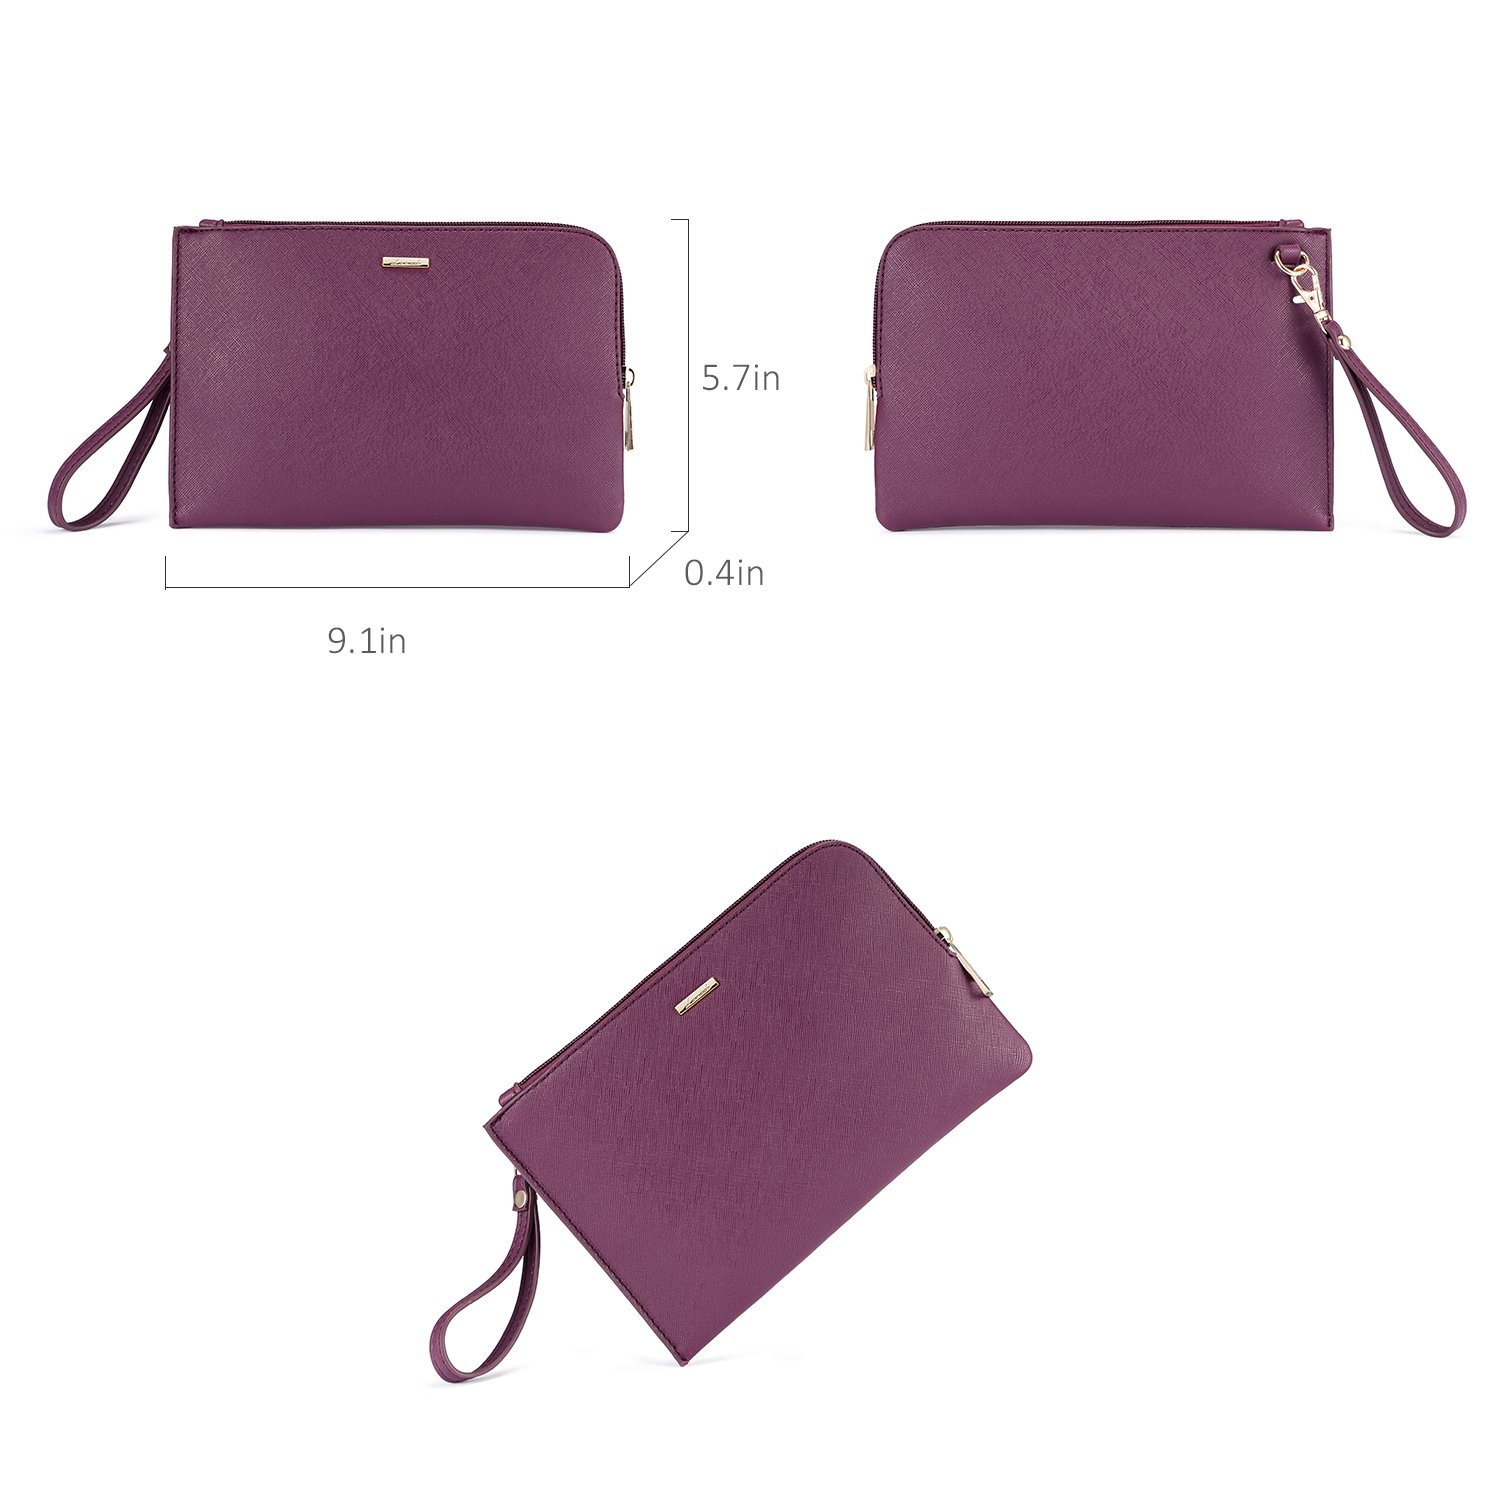 LOVEVOOK Women Purses and Handbags Chic Crossbody Bag Hobo 3pcs Large Capacity Purple by LOVEVOOK (Image #6)